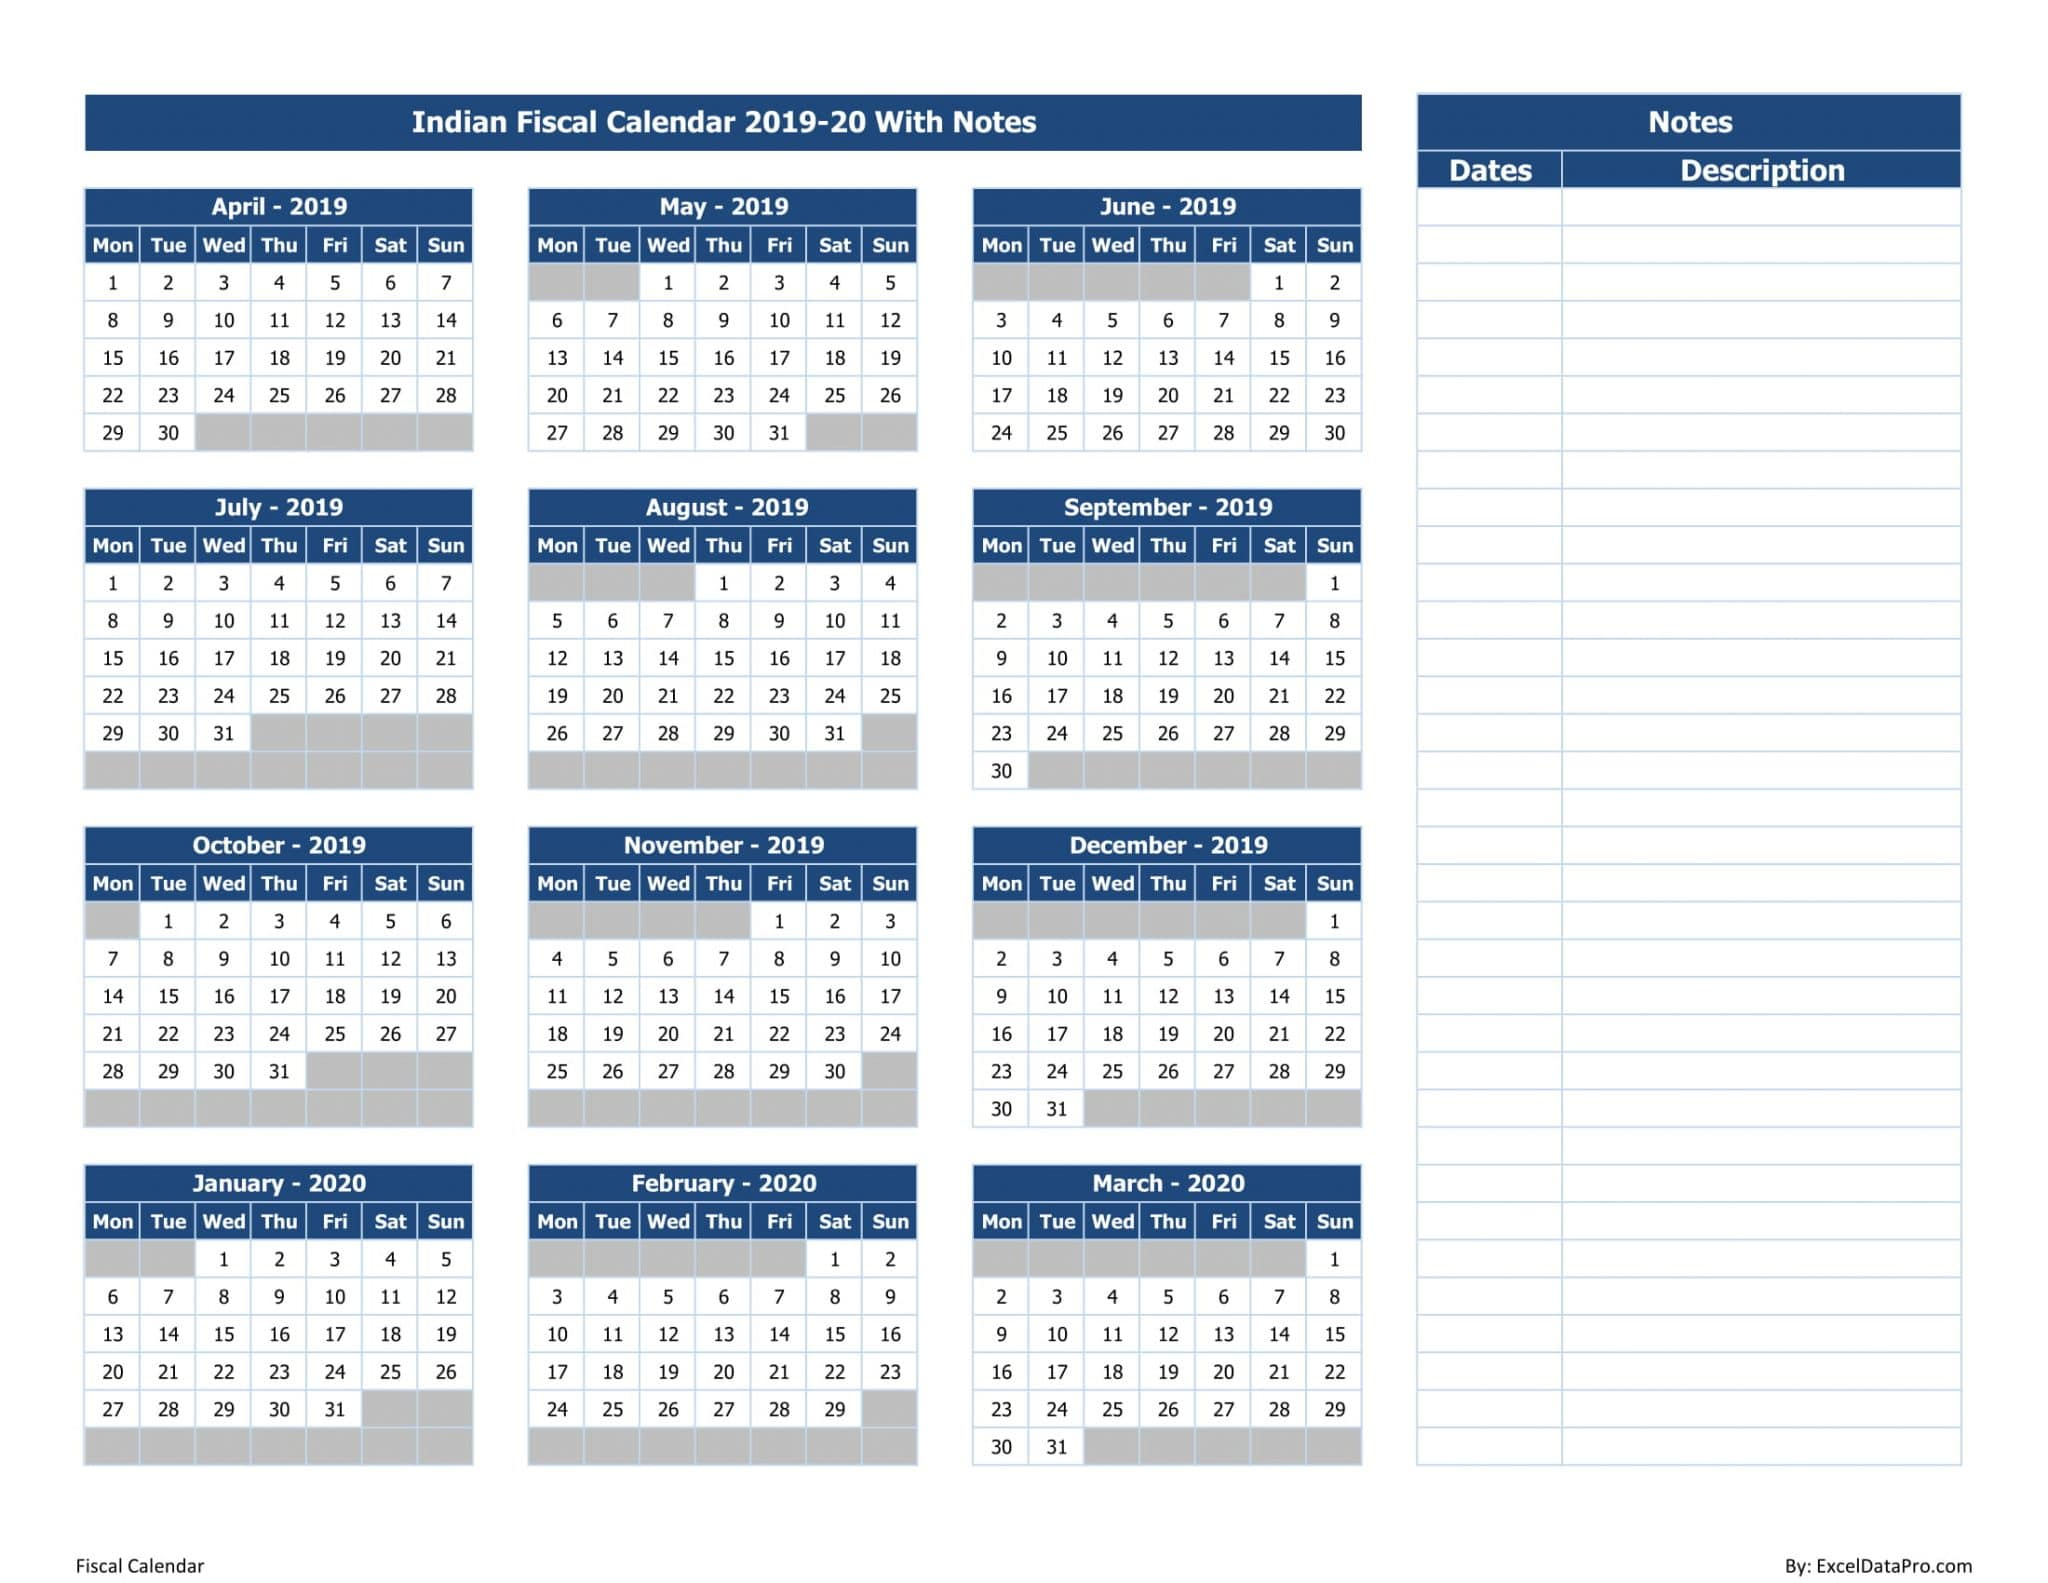 Indian Fiscal Calendar 2019-20 With Notes